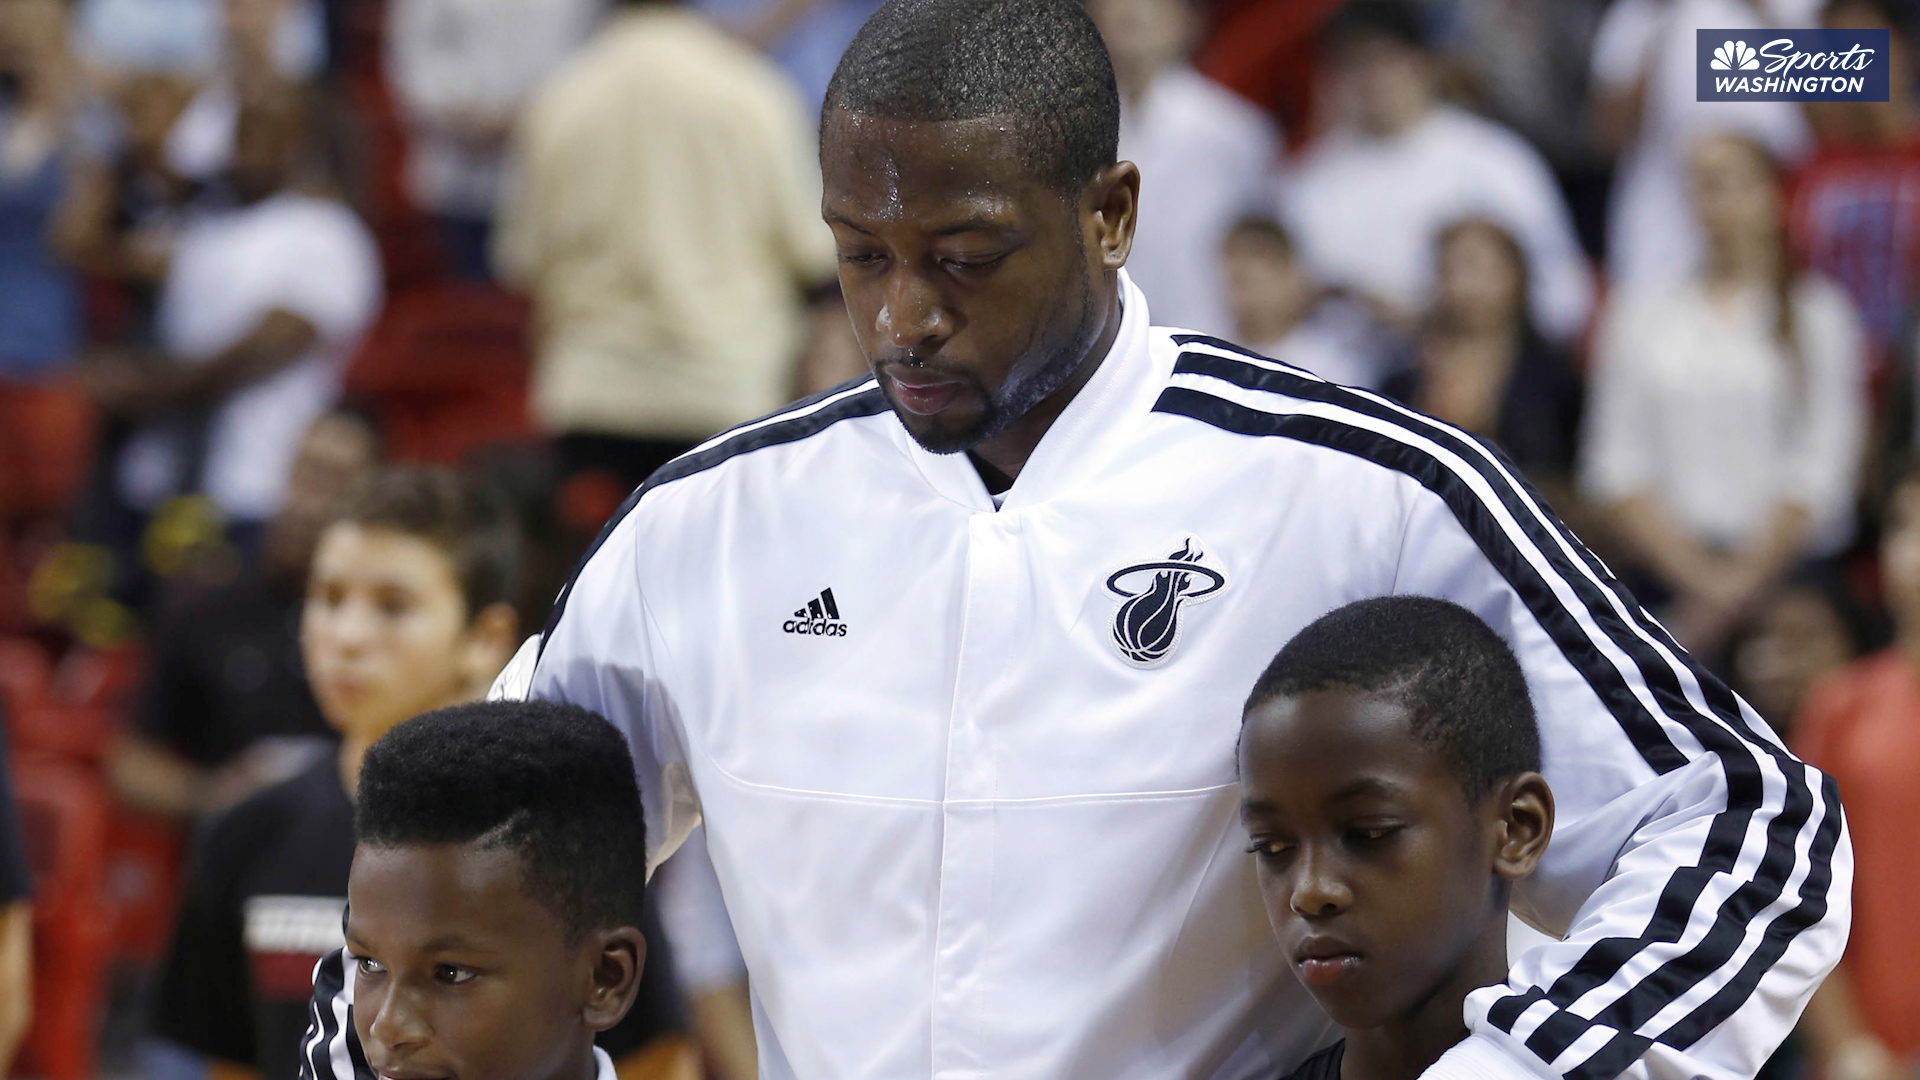 All-Star Fathers: Dwyane Wade & Bradley Beal full-circle